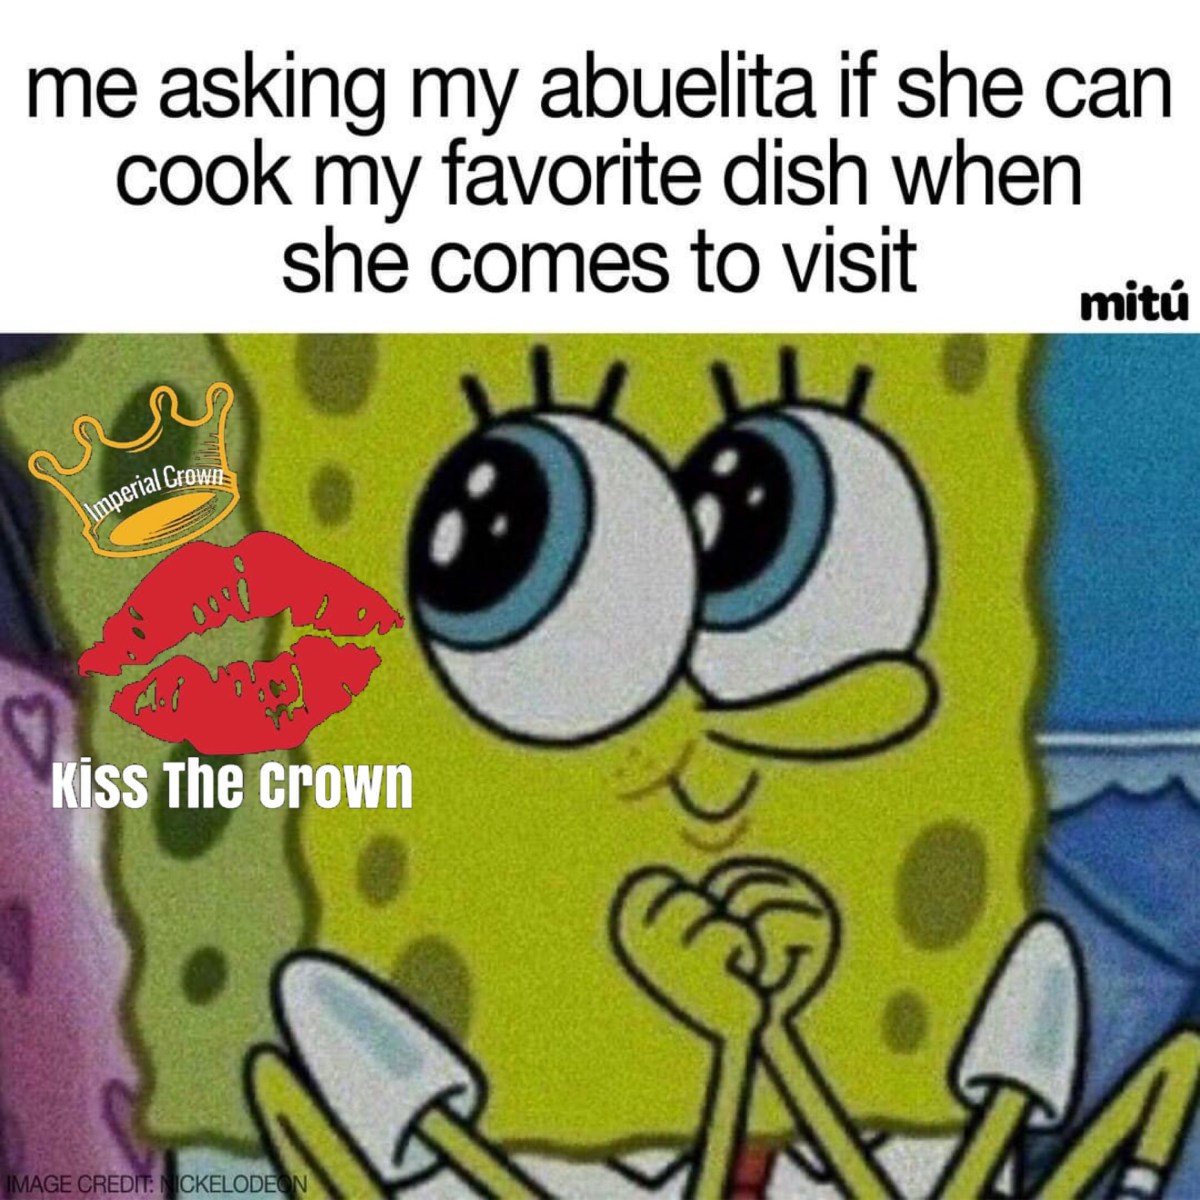 Me asking my abuelita if she can cook my favorite dish when she comes to visit